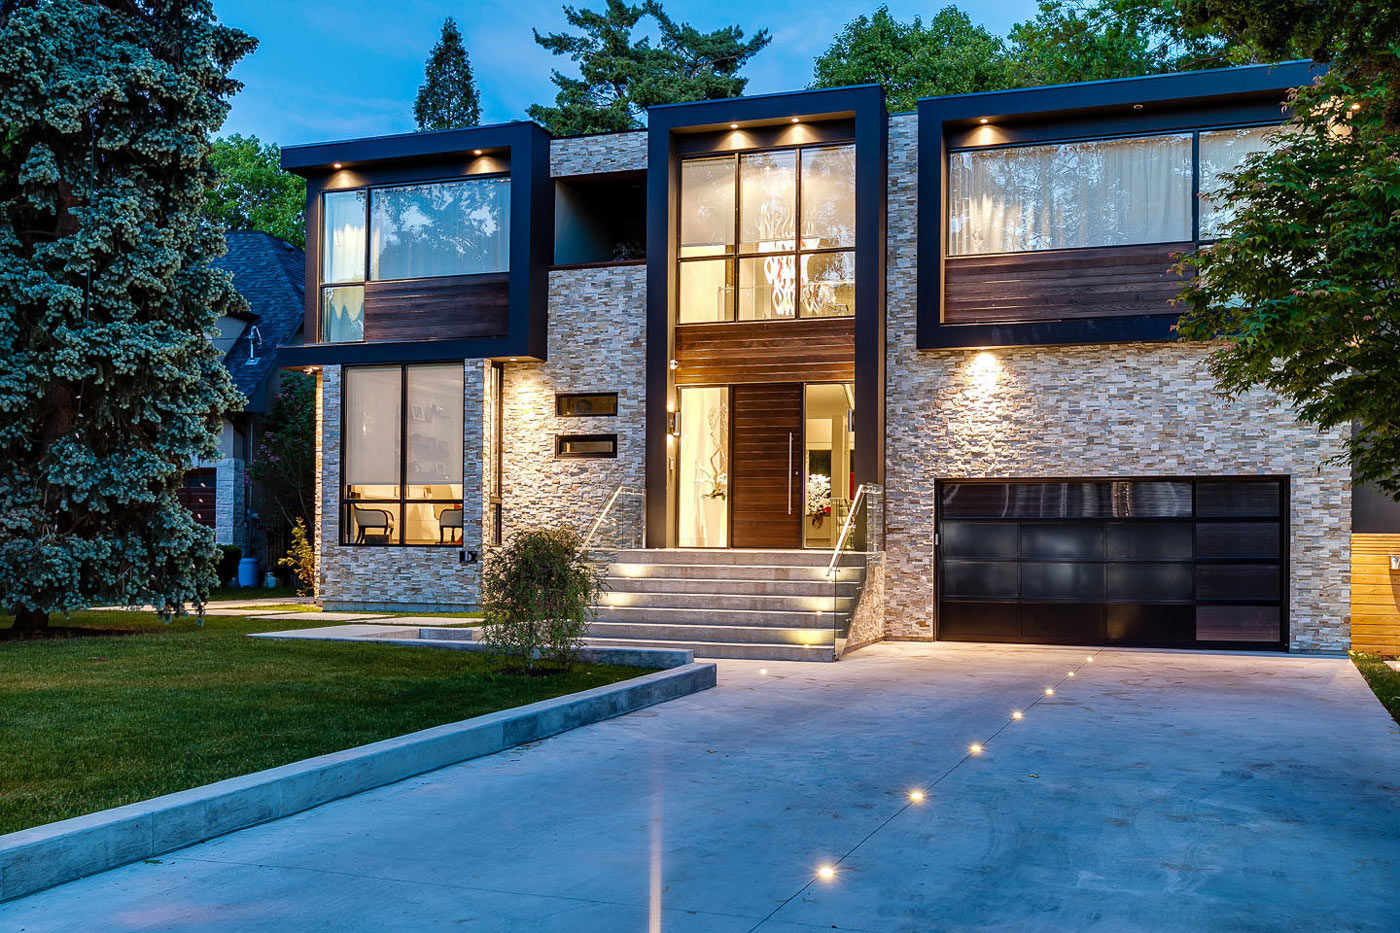 Captivating contemporary house in toronto canada for Fachadas de casas modernas de dos pisos